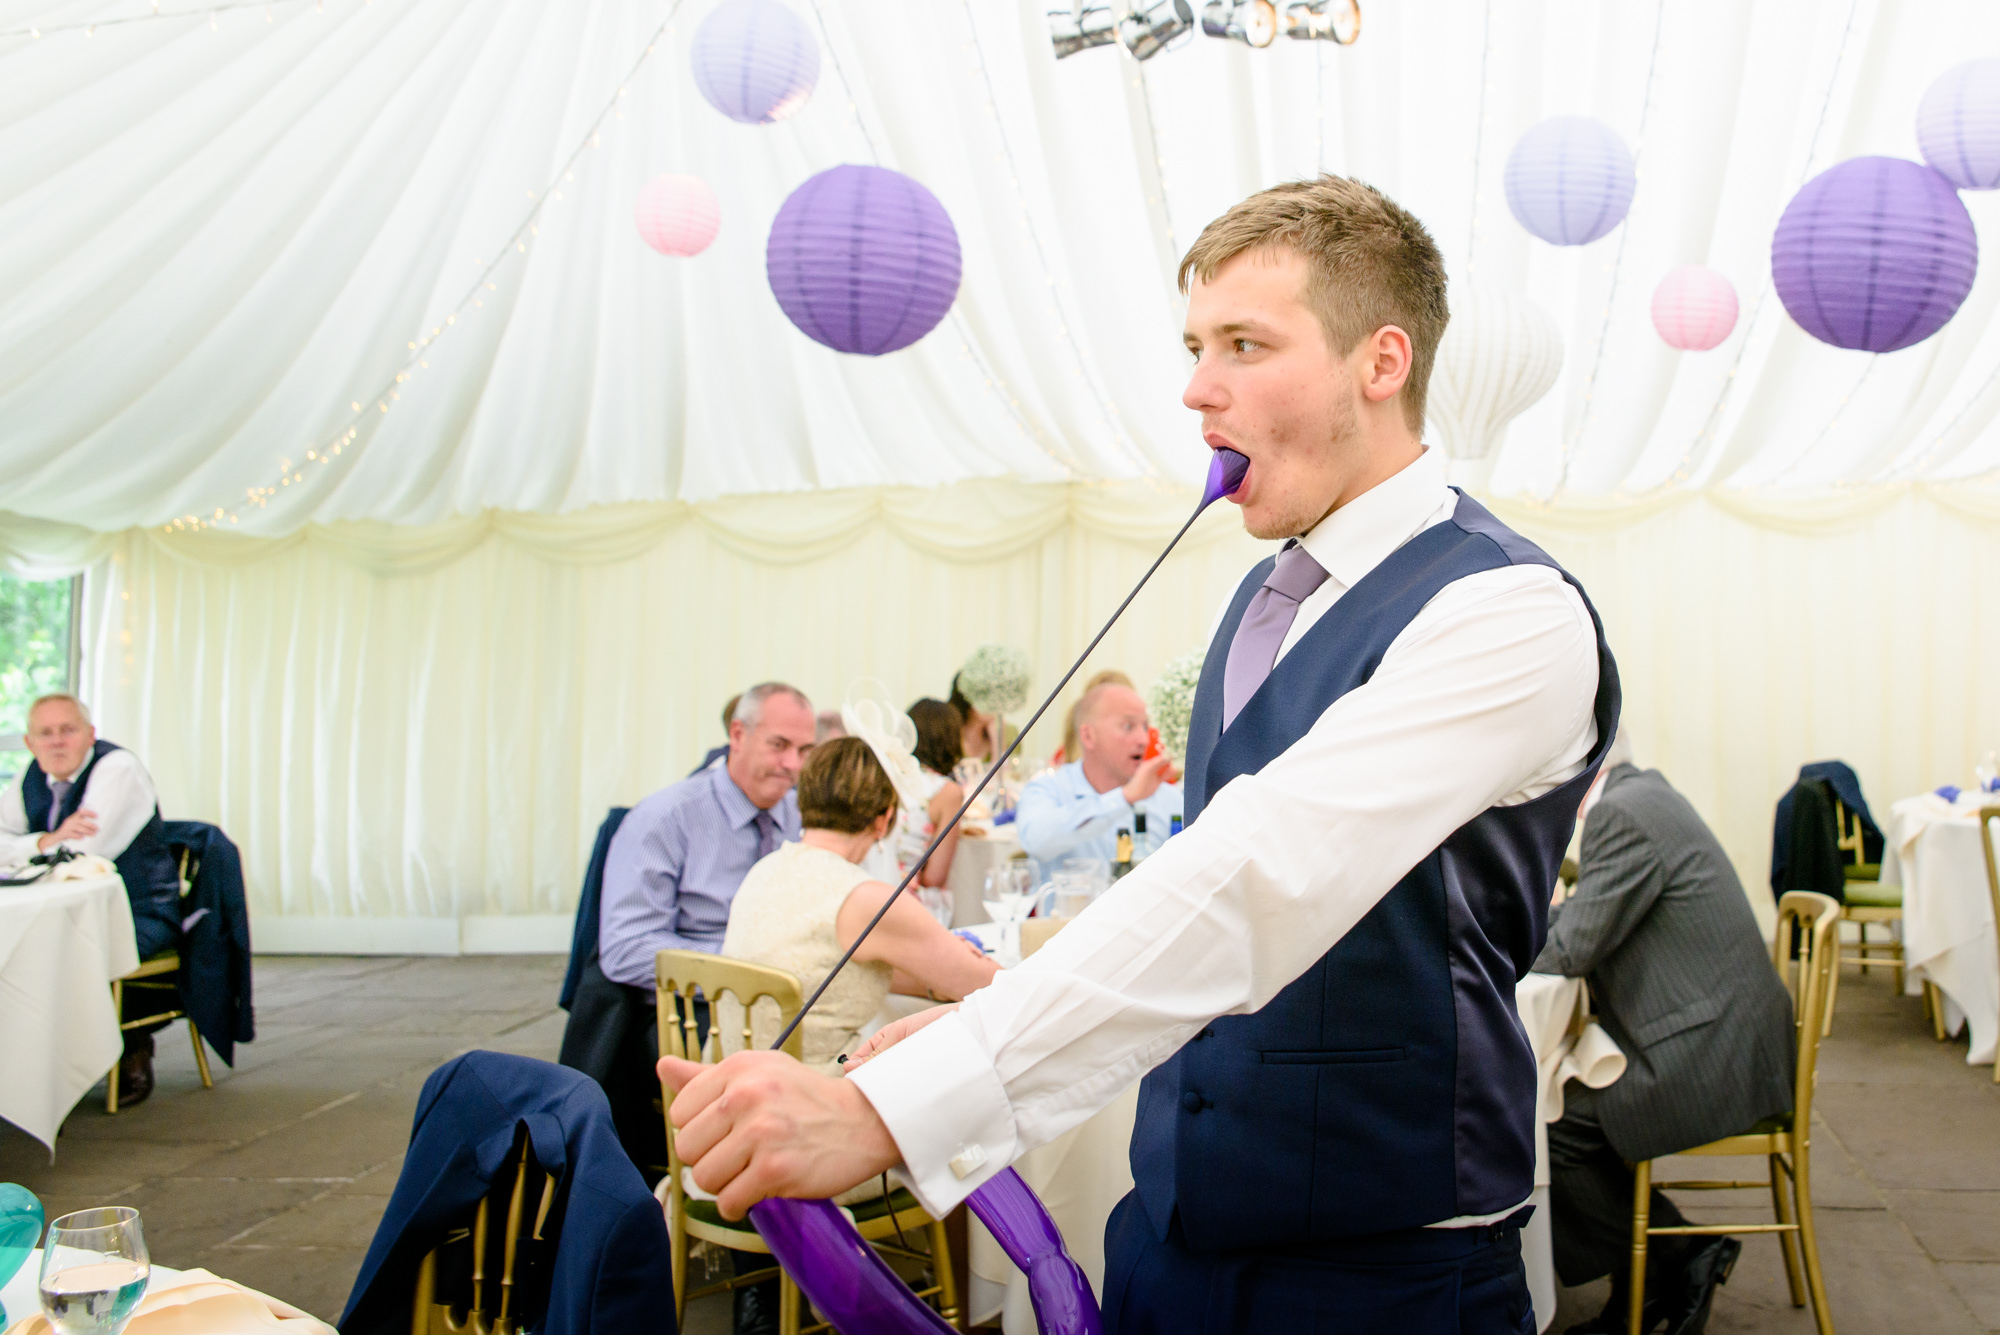 wedding guest trying to make a dog with a balloon